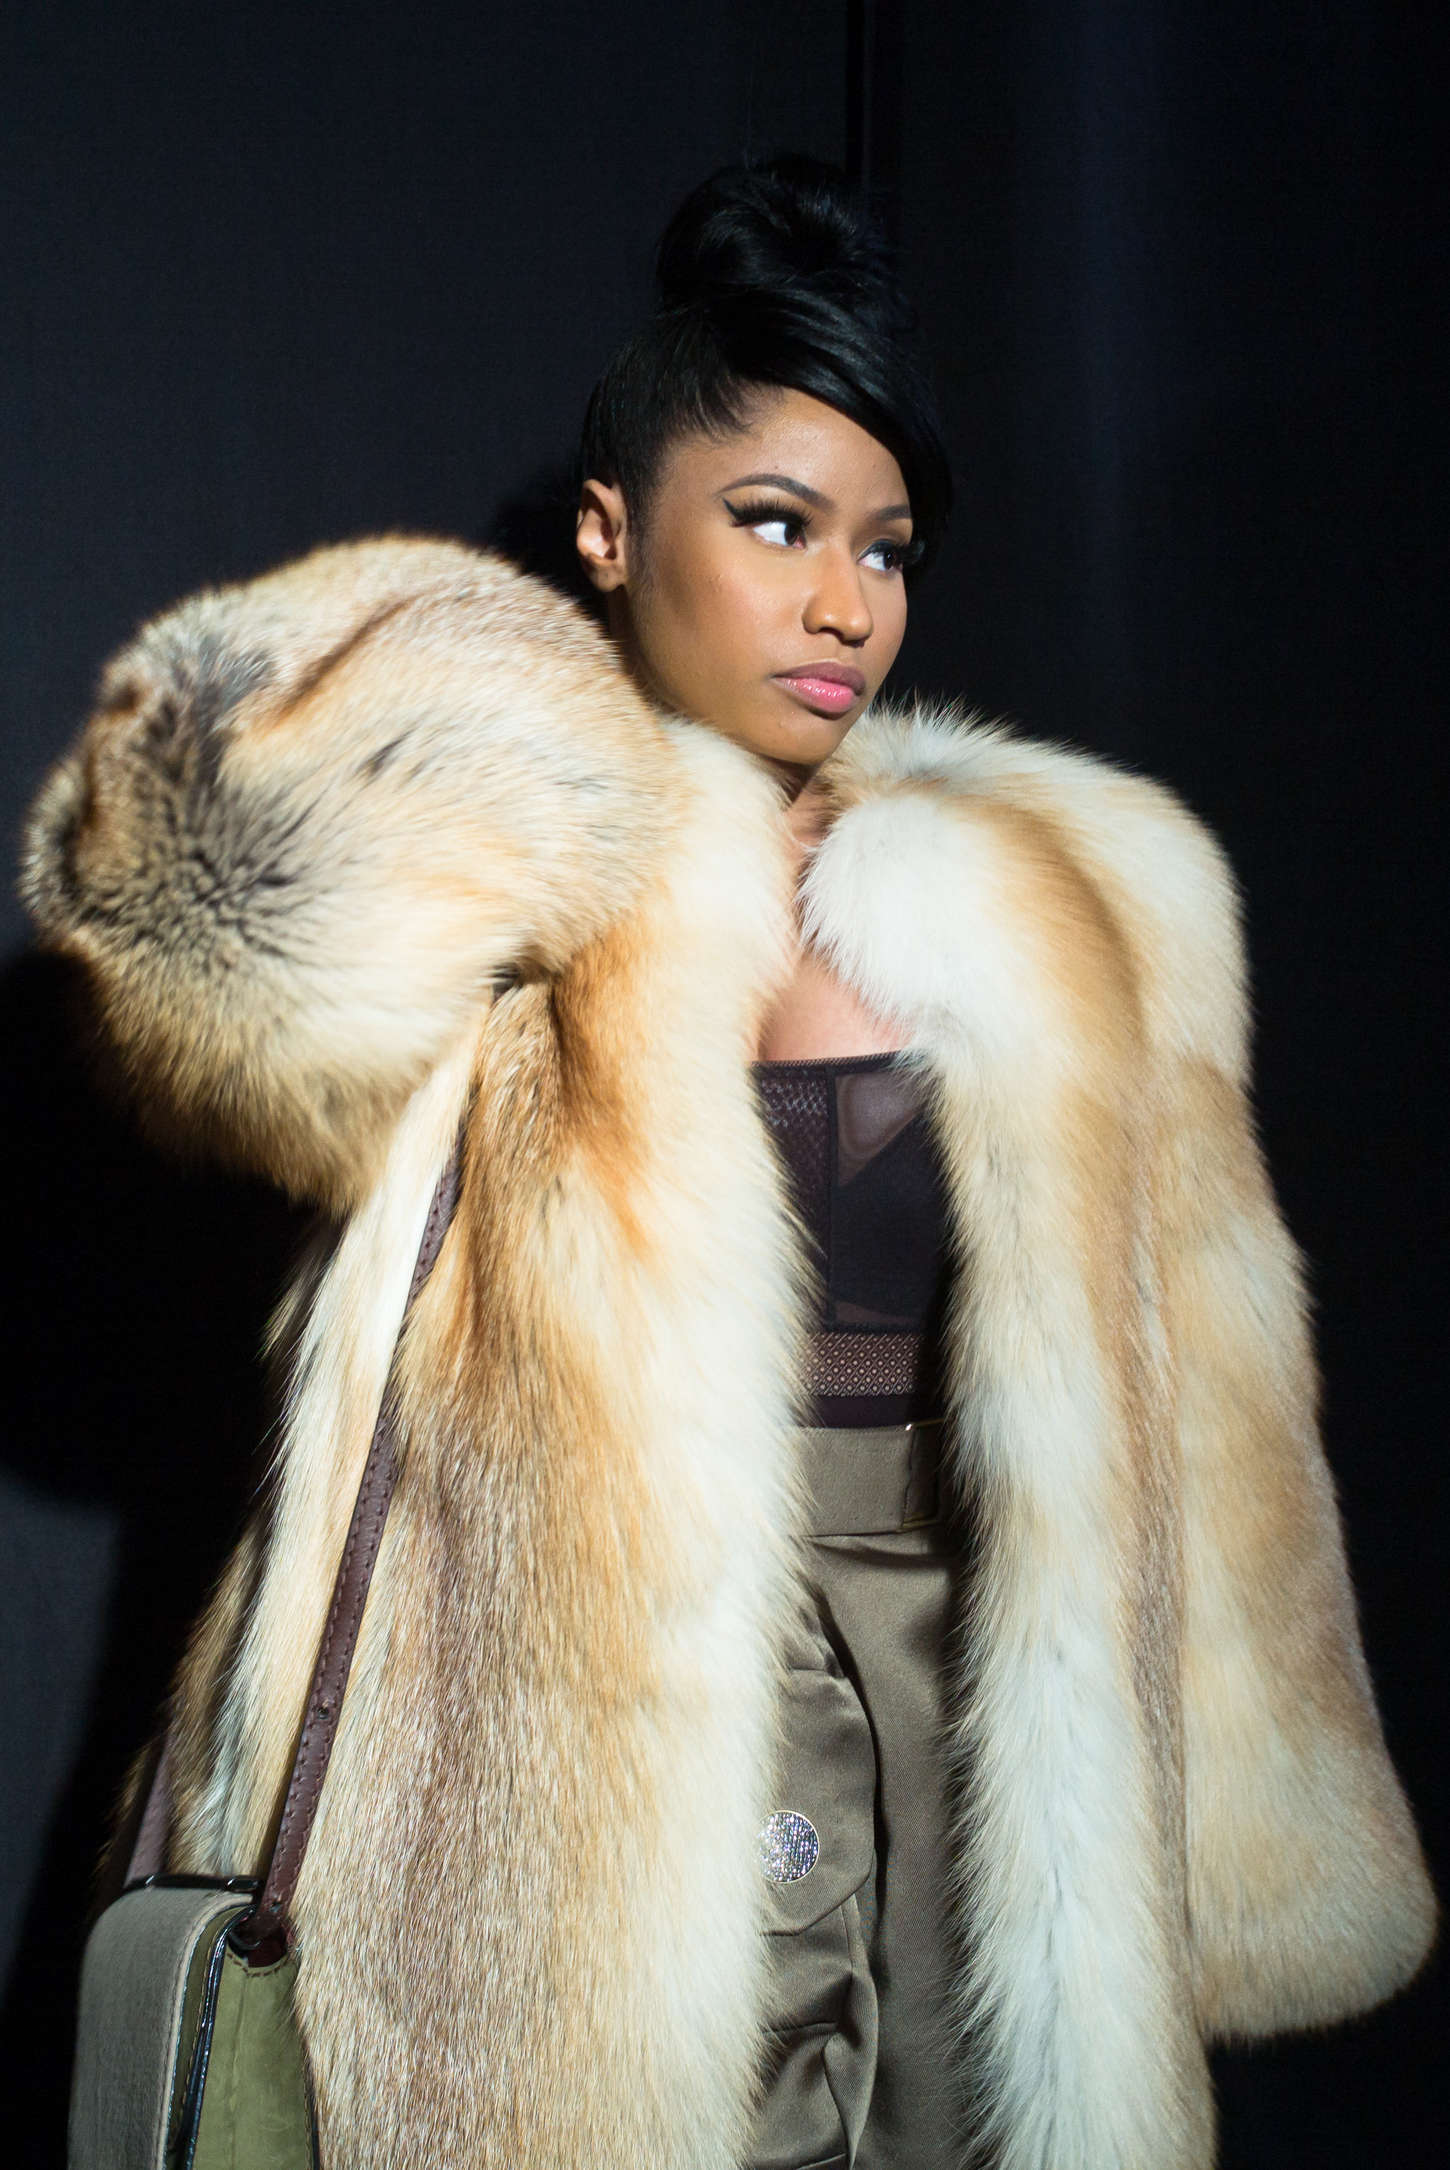 Nicki Minaj Marc Jacobs Fashion Show 2015 14 Gotceleb